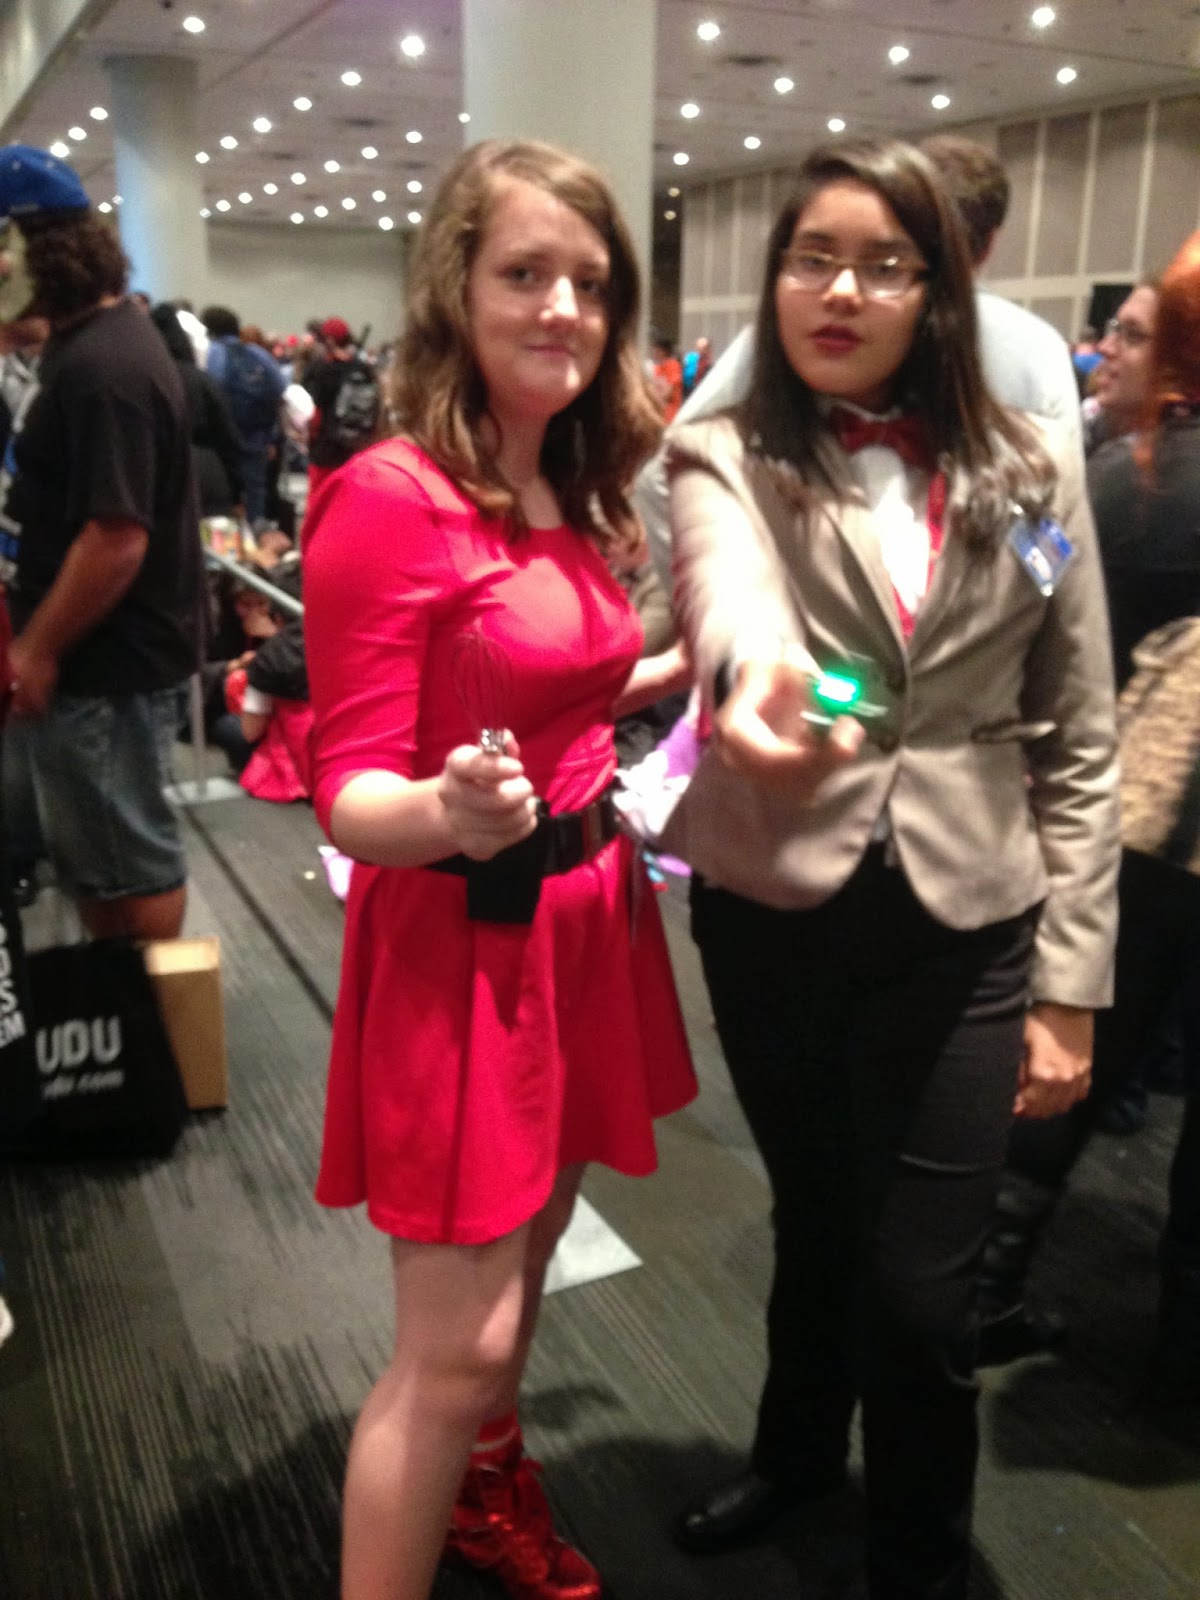 The Gallifreyan Gazette: NYCC'13 Cosplay Pictures - Mainly ...